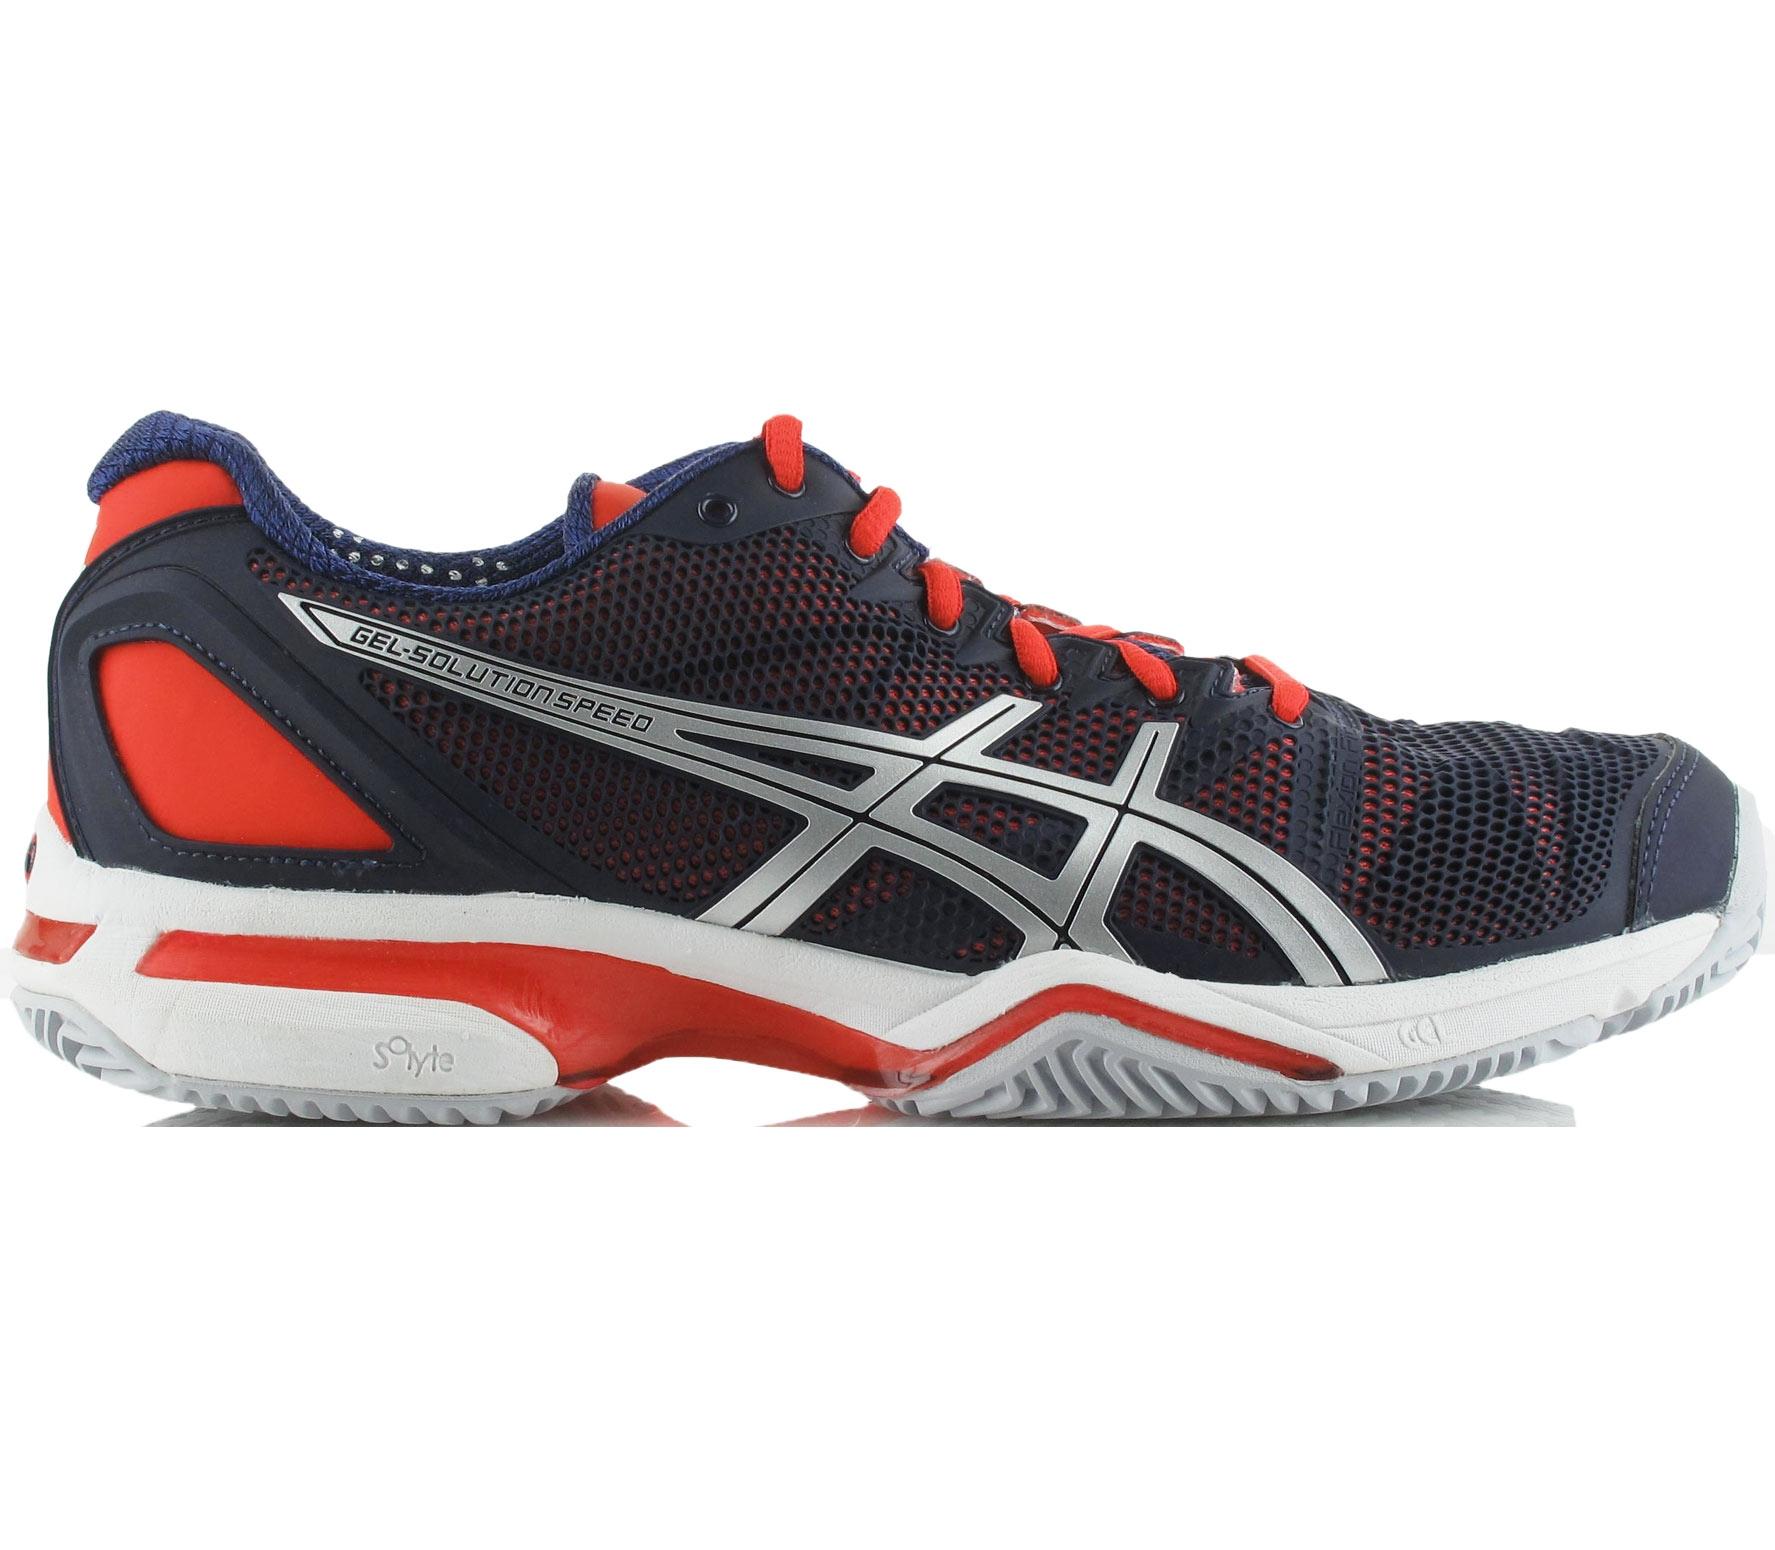 Asics - Tennis shoes Women Gel Solution Speed Clay